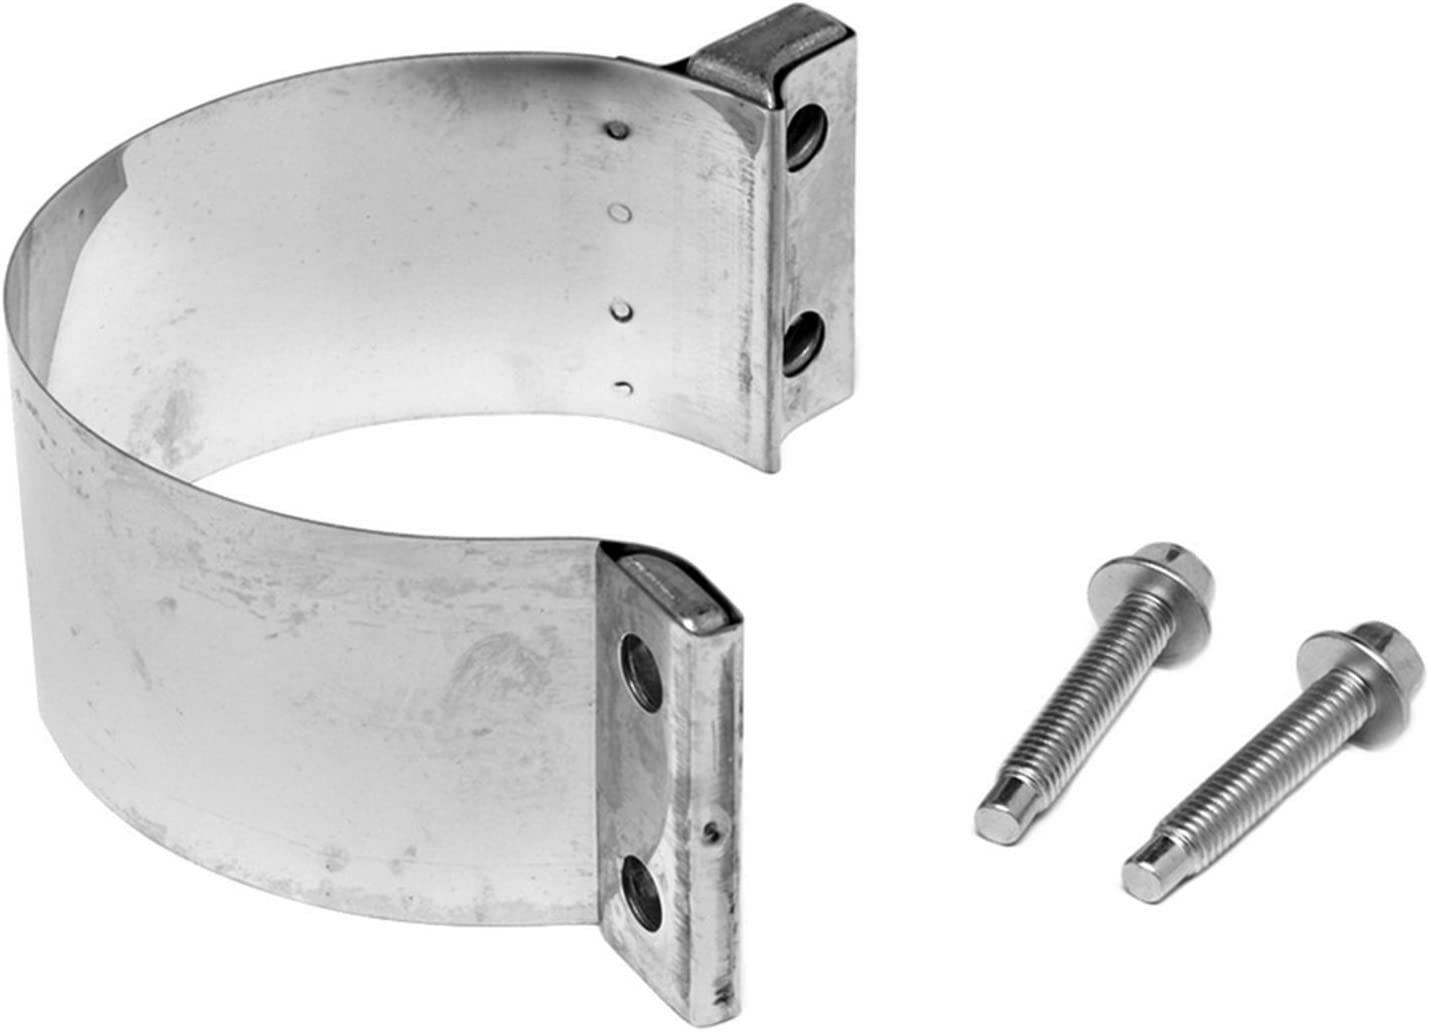 Dynomax 33241 Stainless Steel Hardware Clamp Band